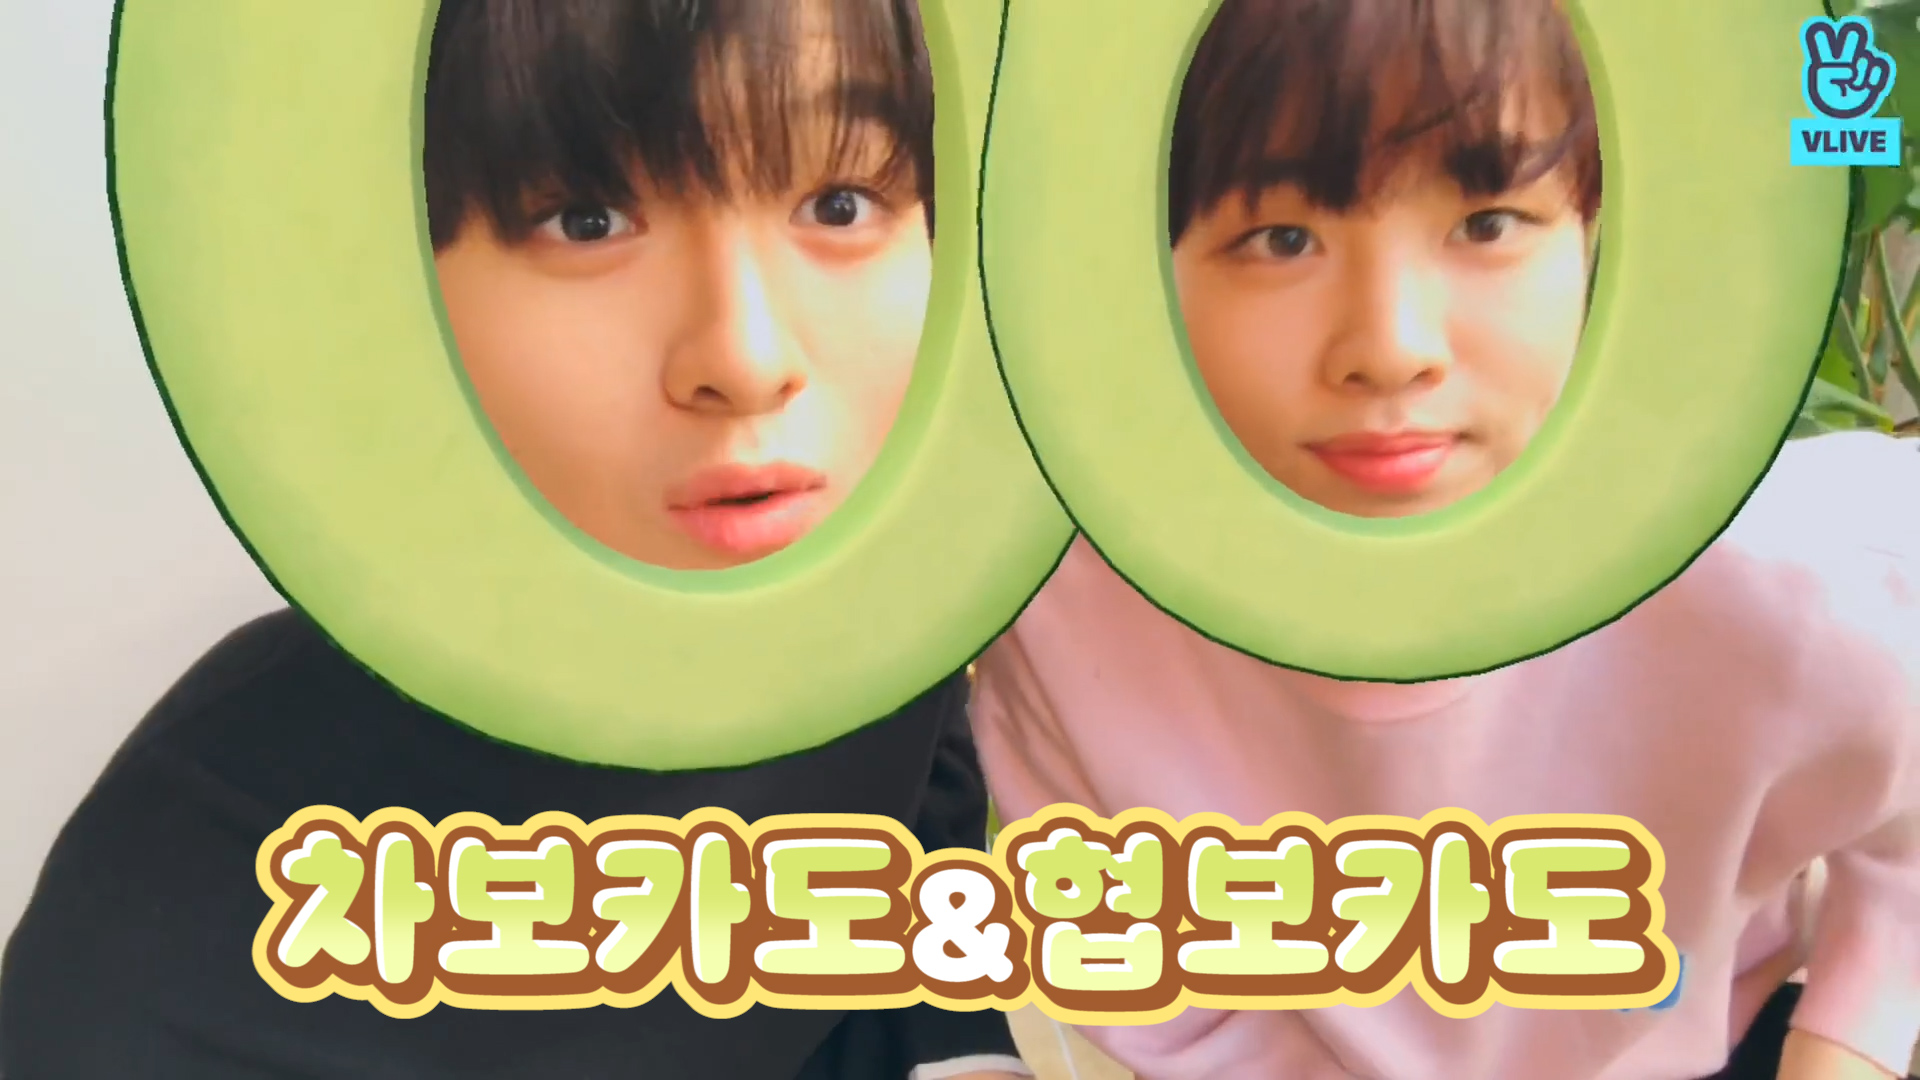 [Woollim Rookie] 🏆귀여운 과일 1위 차보카도&협보카도 나가신다!!🥑 (JUNHO&HYEOP playing with filters)